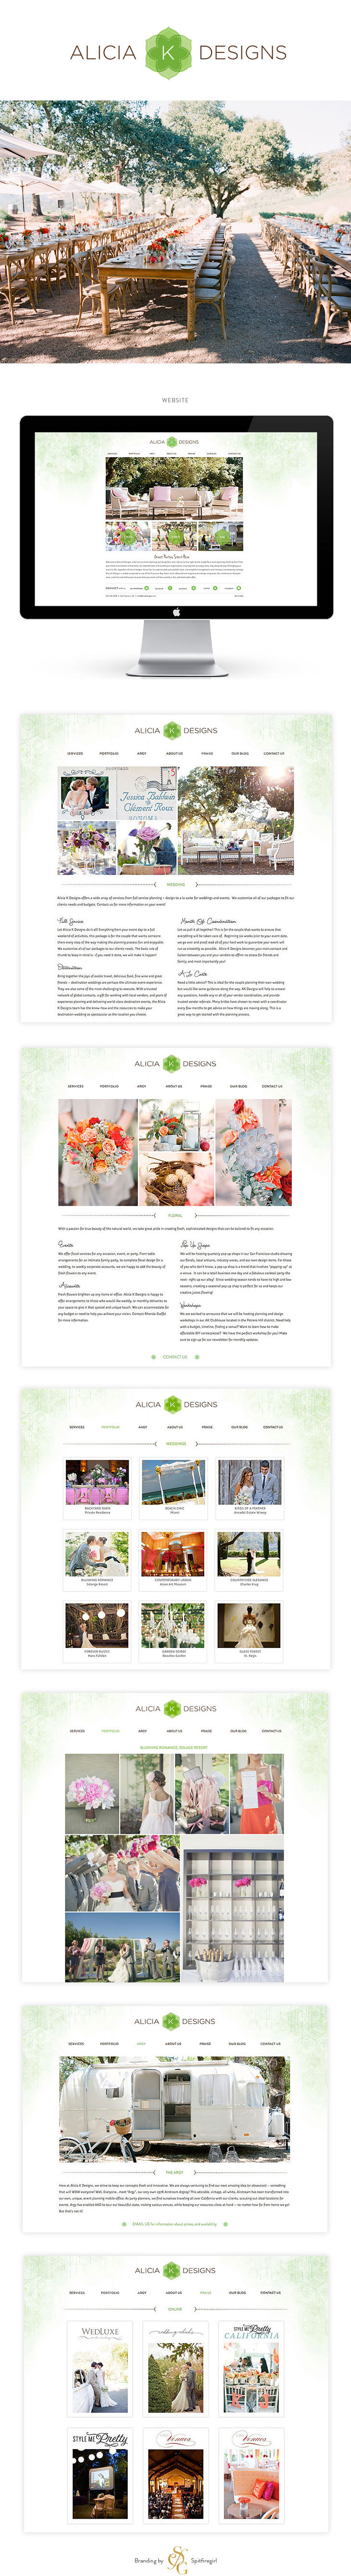 Branding for wedding designer Alicia K Designs